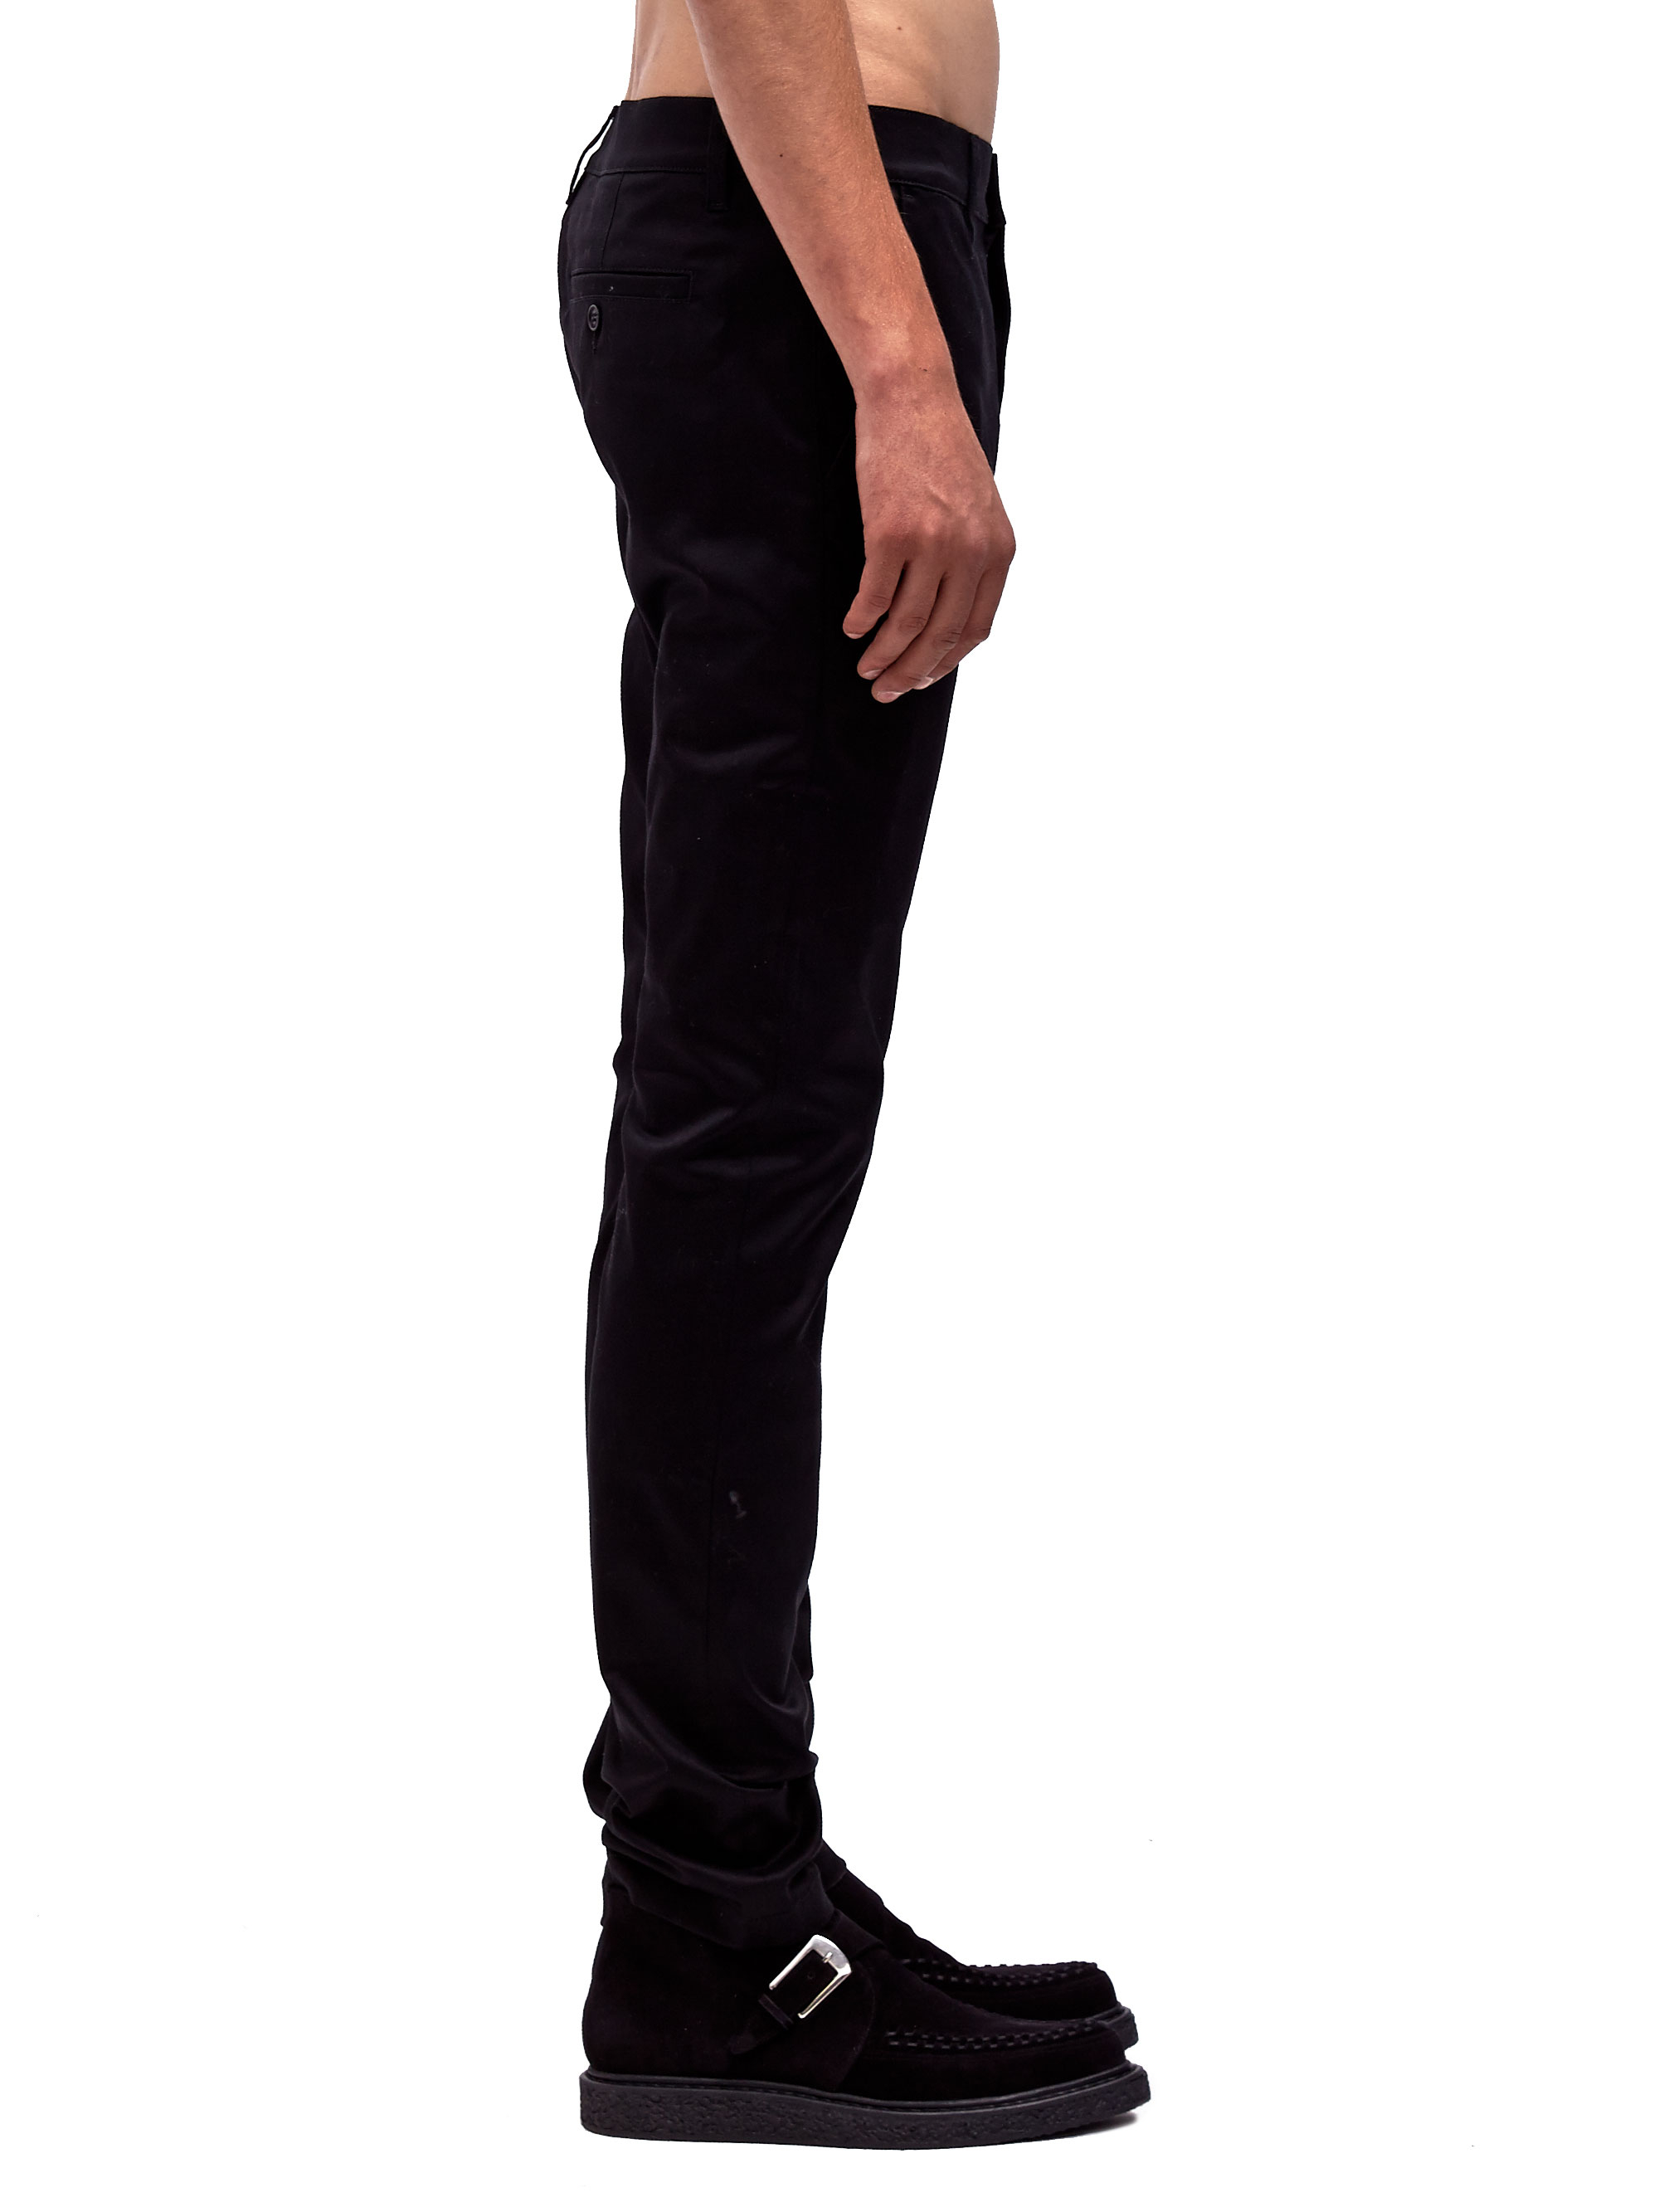 Find a great selection of men's pants in a slim, sophisticated fit at allshop-eqe0tr01.cf Totally free shipping and returns.